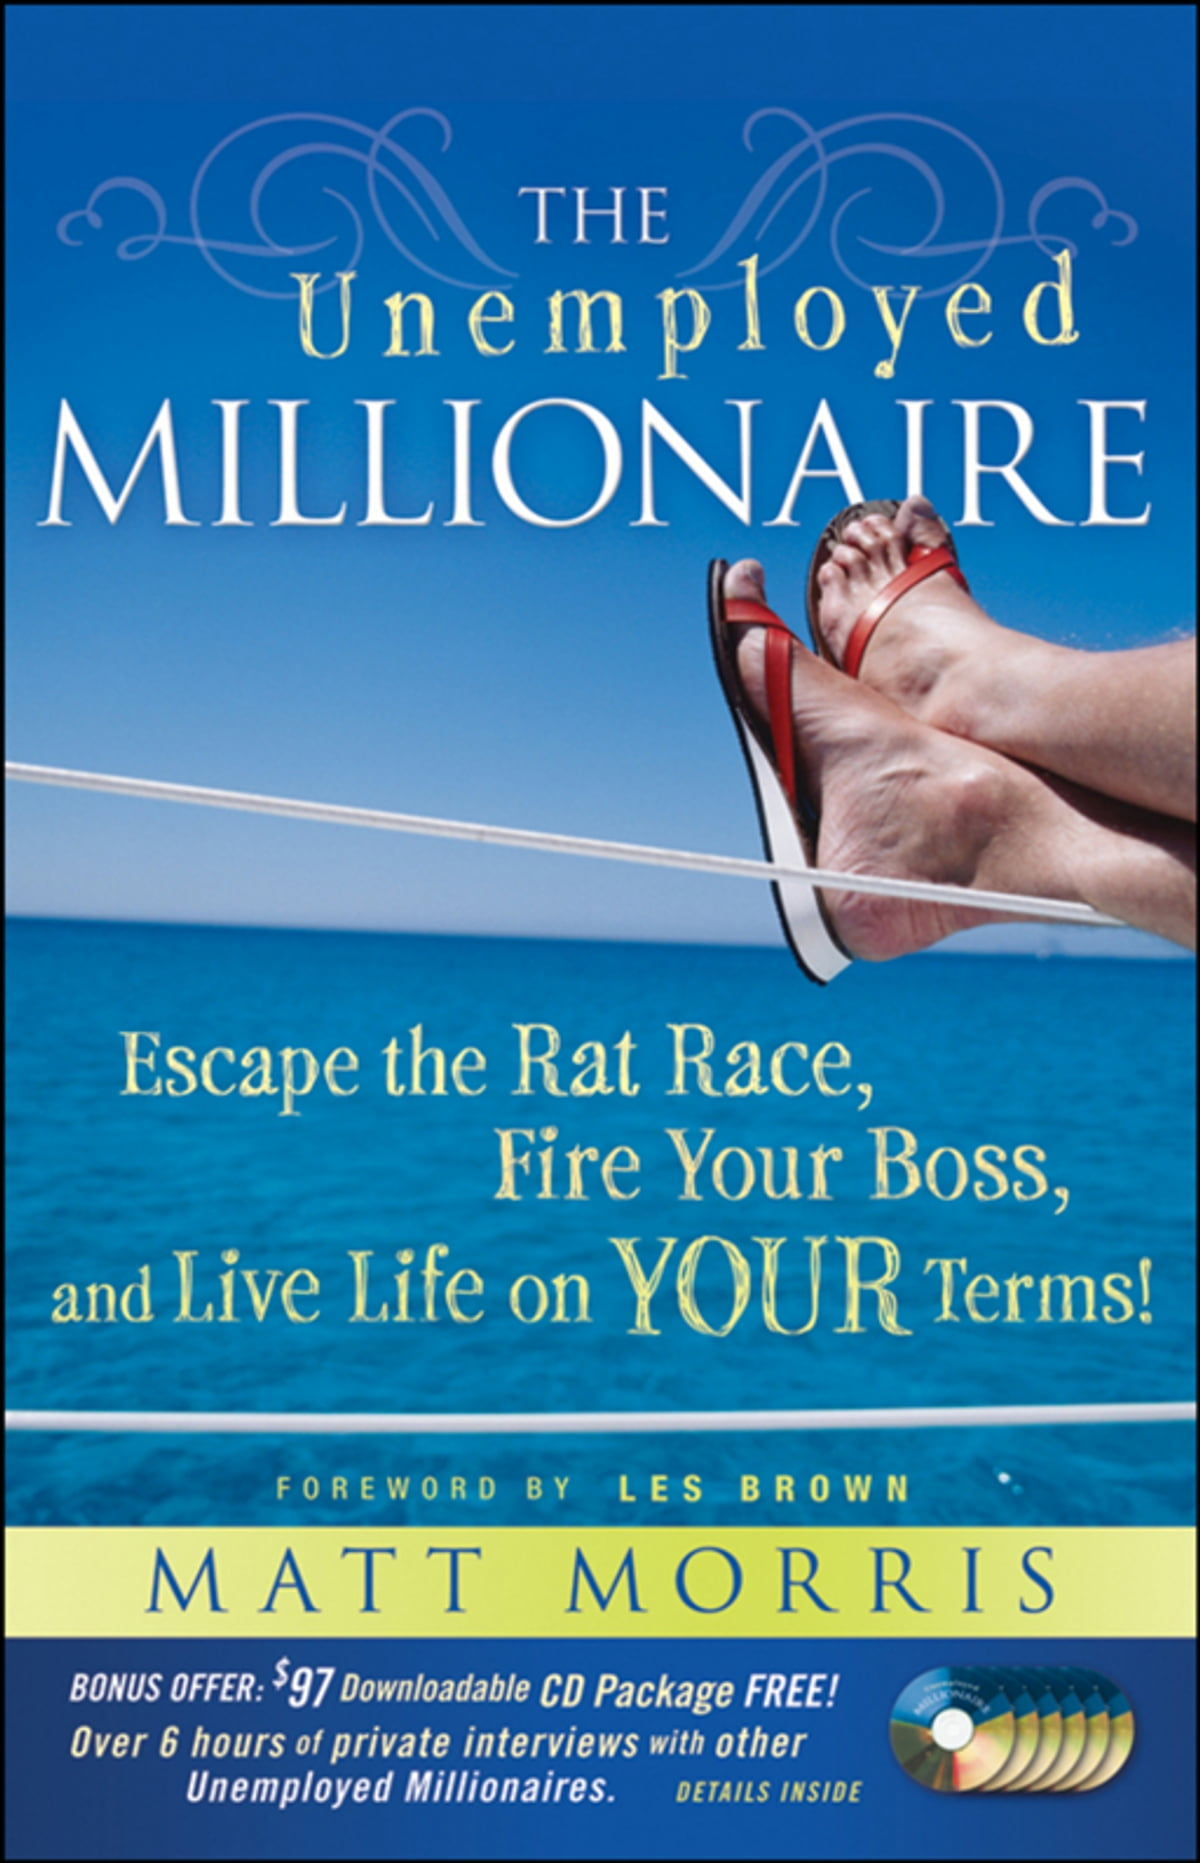 The Unemployed Millionaire  Escape The Rat Race, Fire Your Boss And Live  Life On